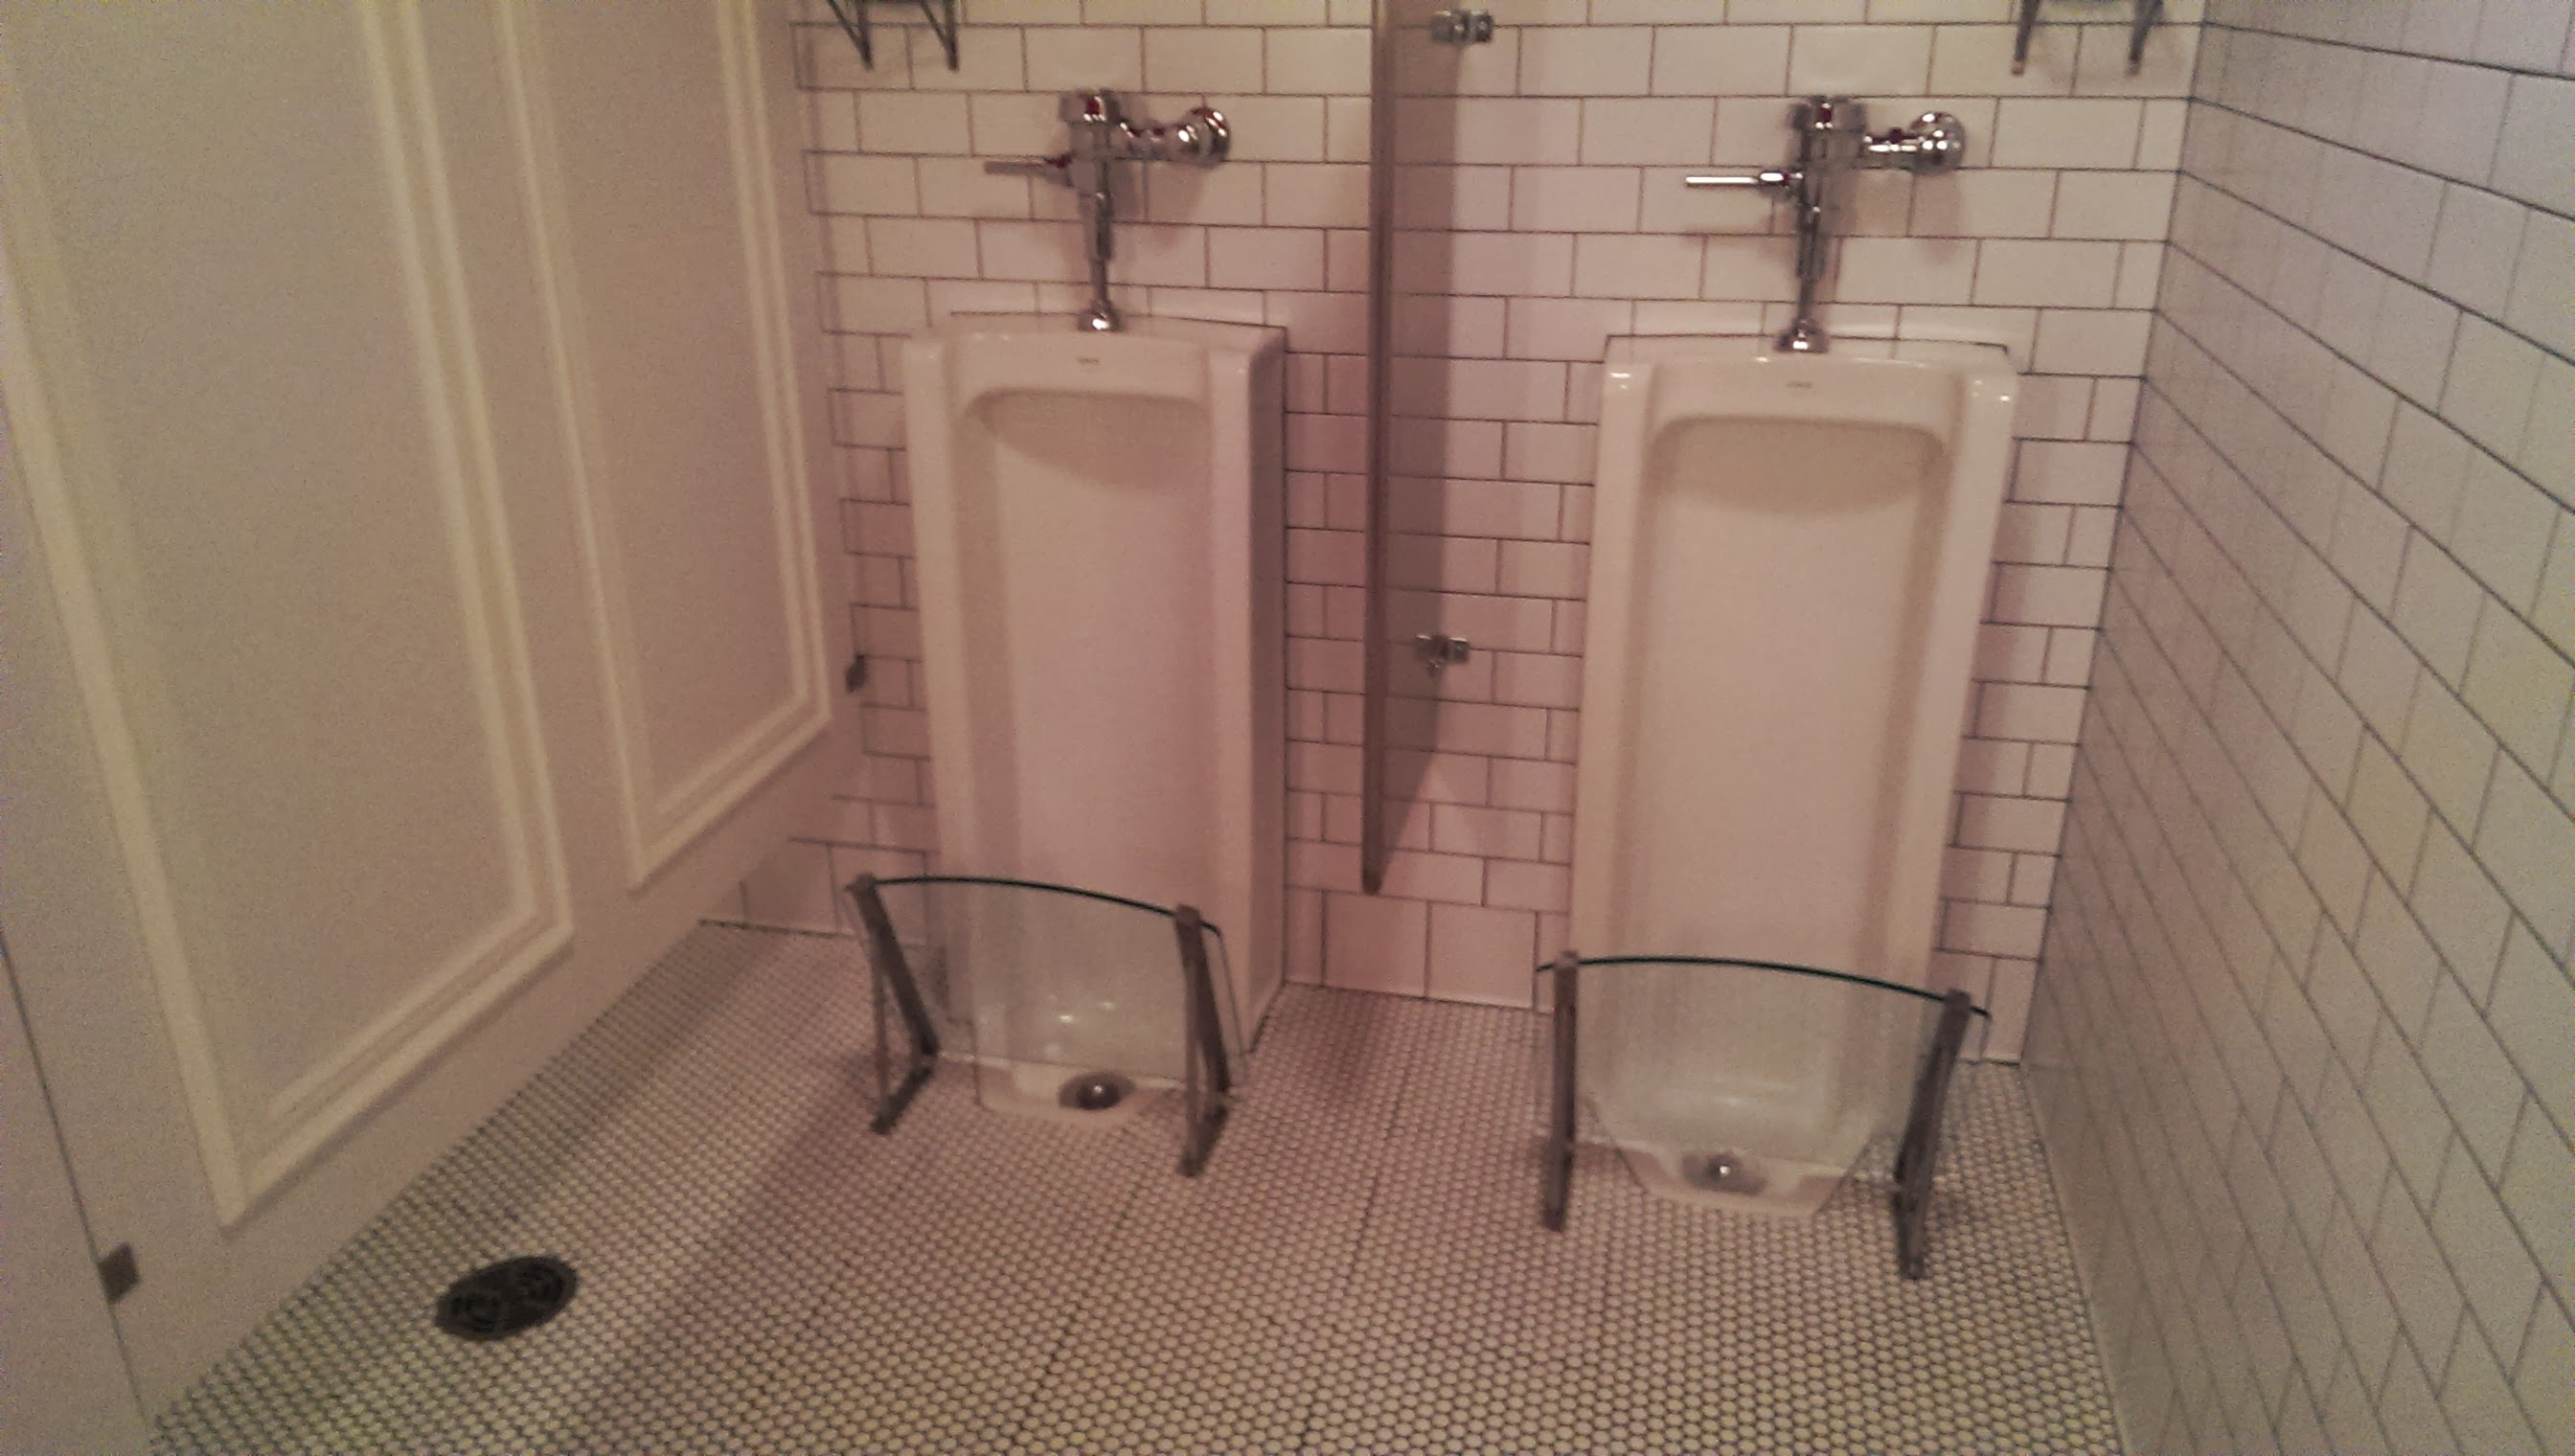 urinals for home bathrooms | My Web Value